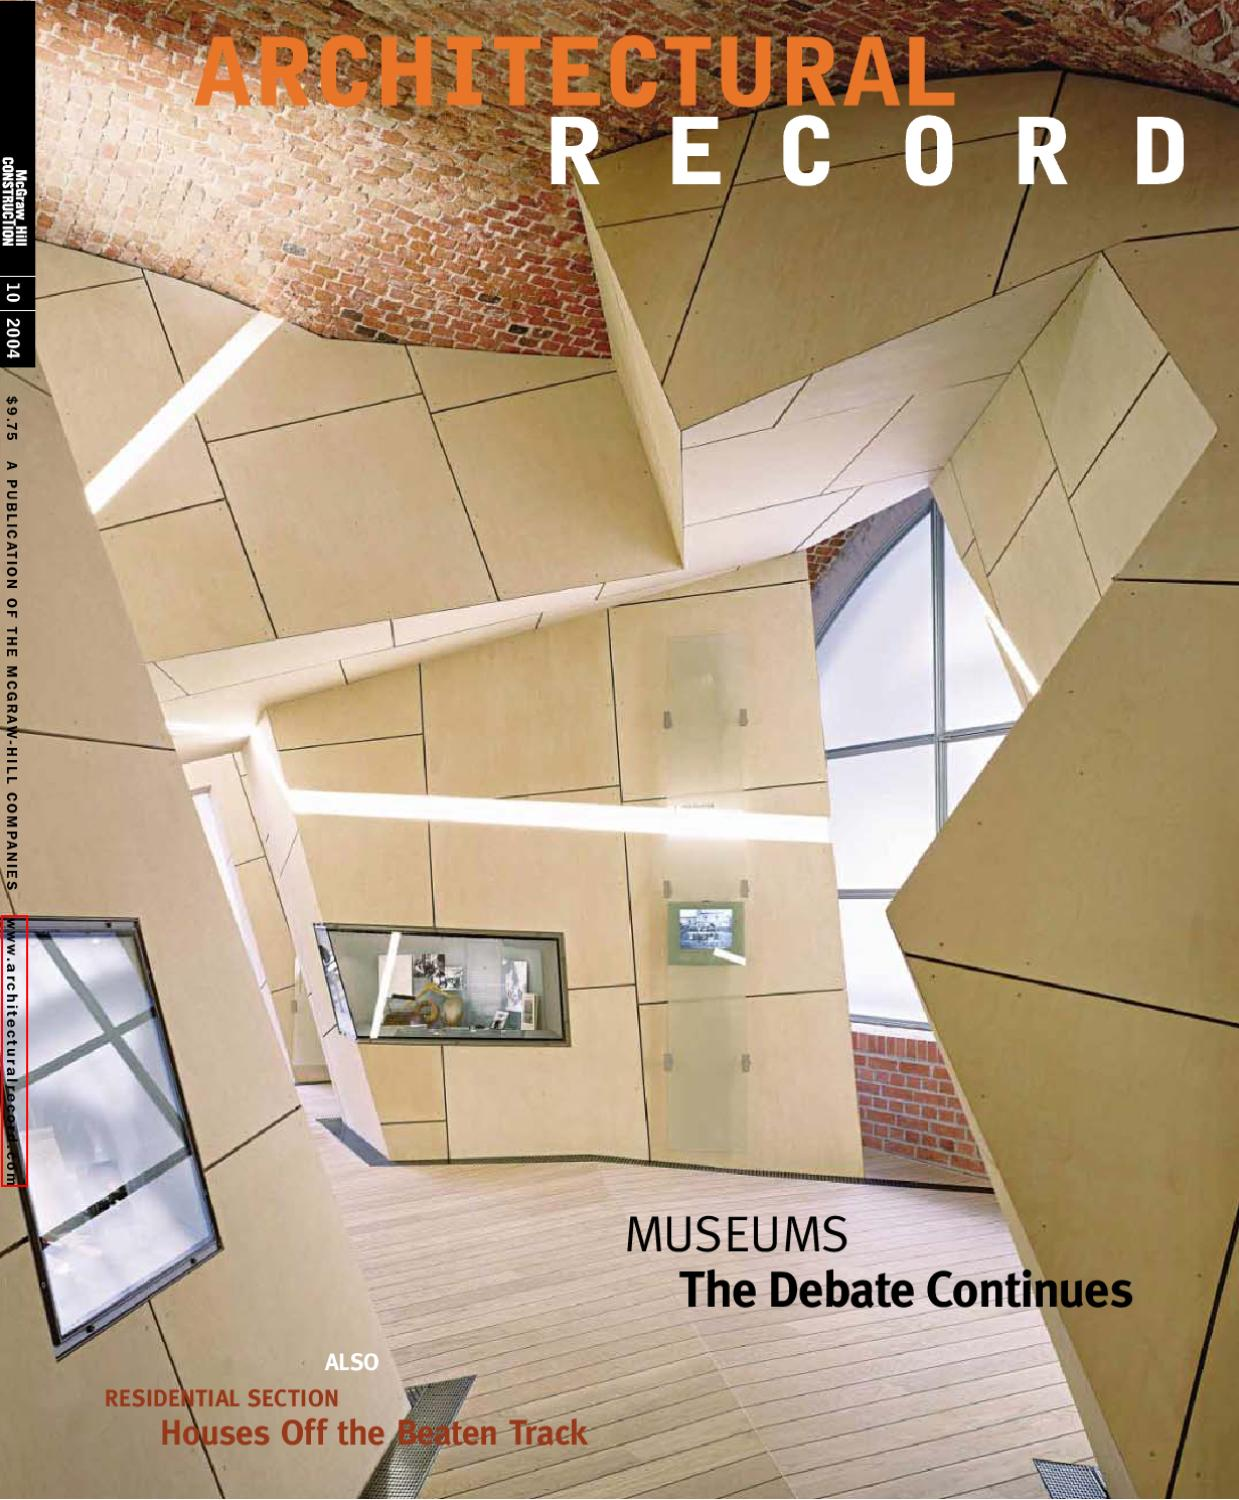 Architecture eBook] Revista Architectural Record by Wang YiFeng - issuu